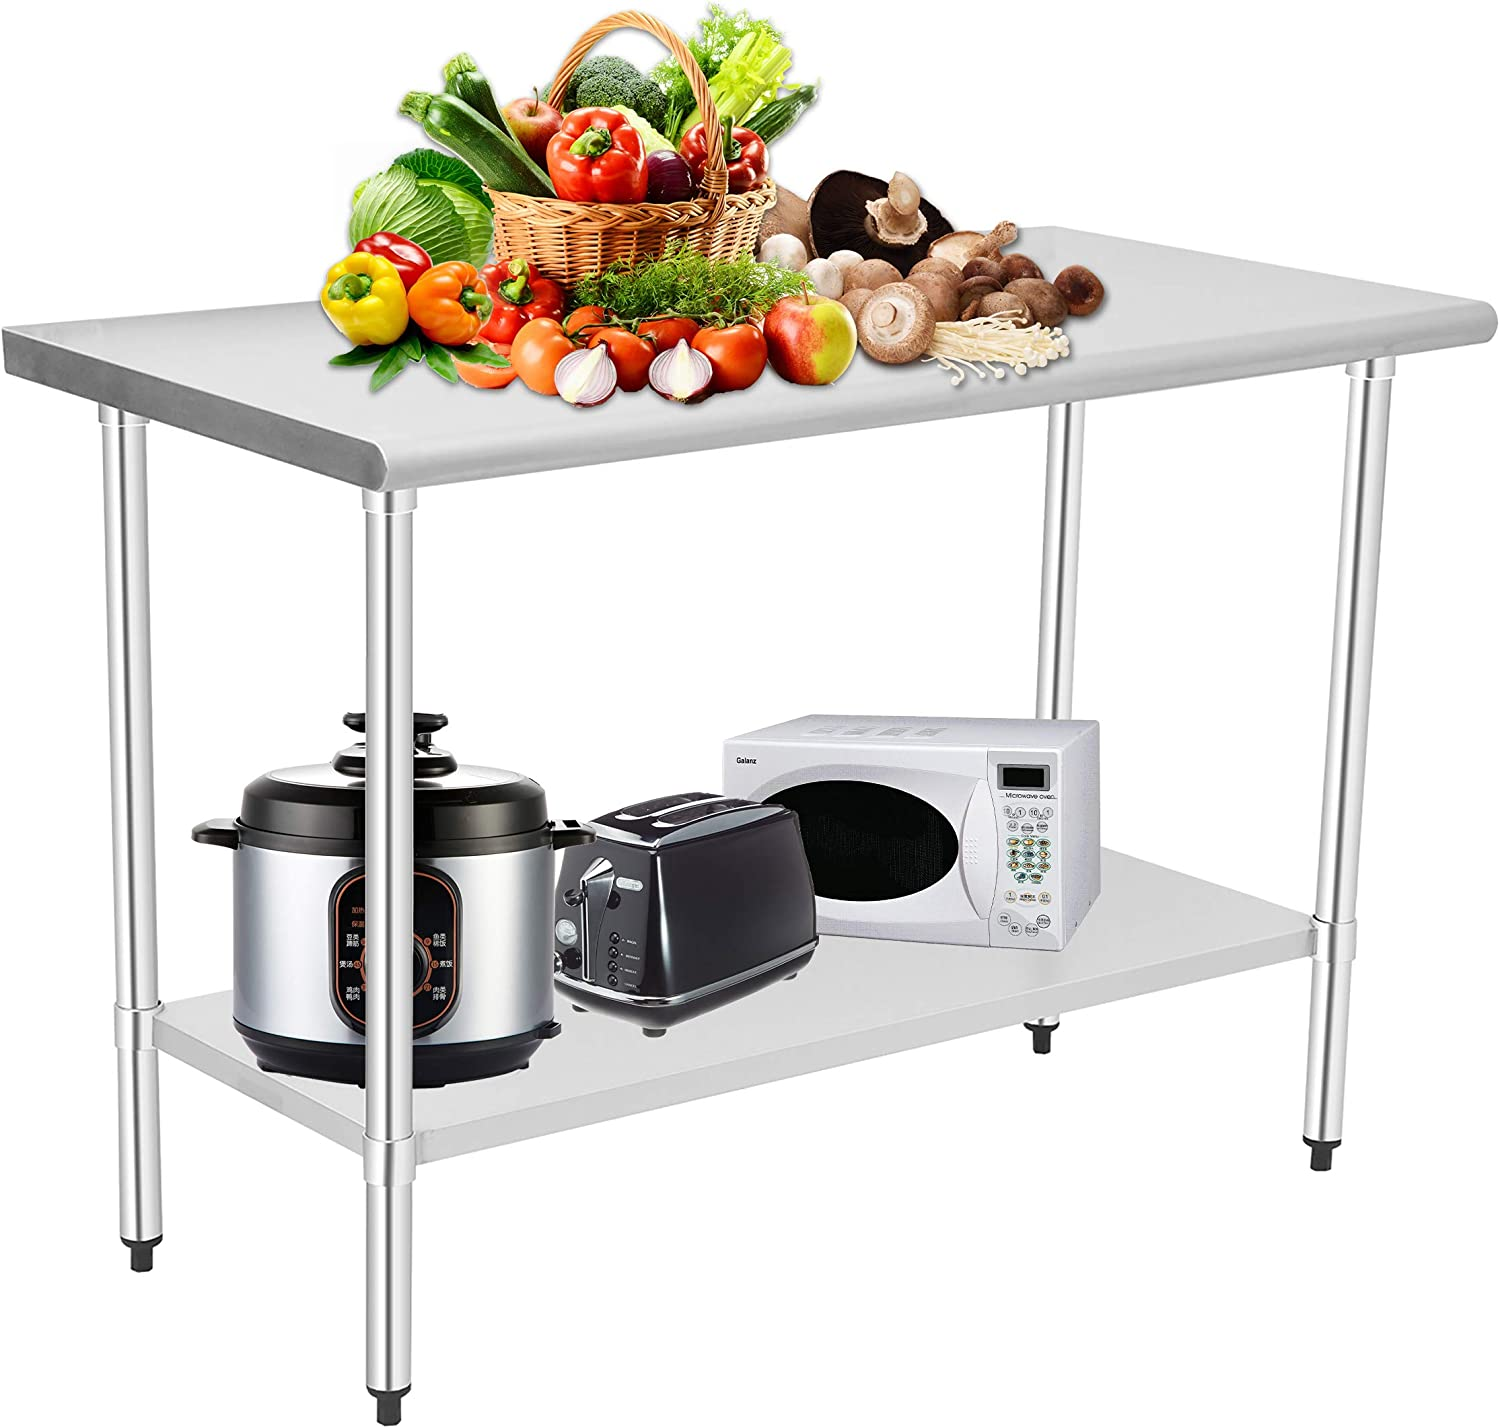 HOCCOT Stainless Steel Prep & Work Table with Adjustable Shelf, Kitchen Island with Storage, Commercial Workstations, NSF-Certified, Utility Table in Kitchen Garage Laundry Room Outdoor BBQ, 24